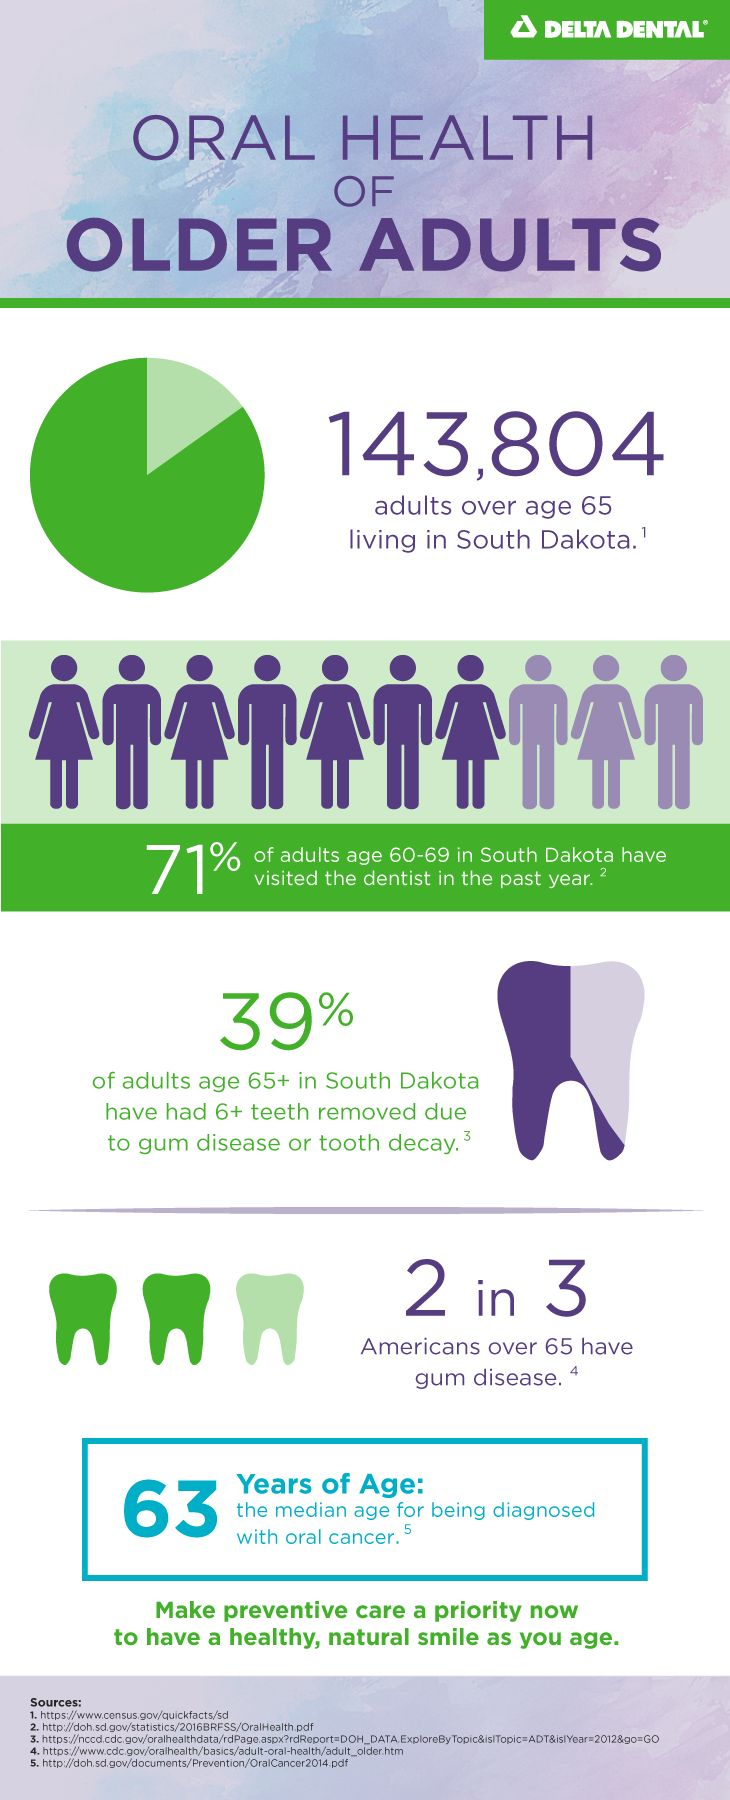 In the past, losing teeth was just part of getting old